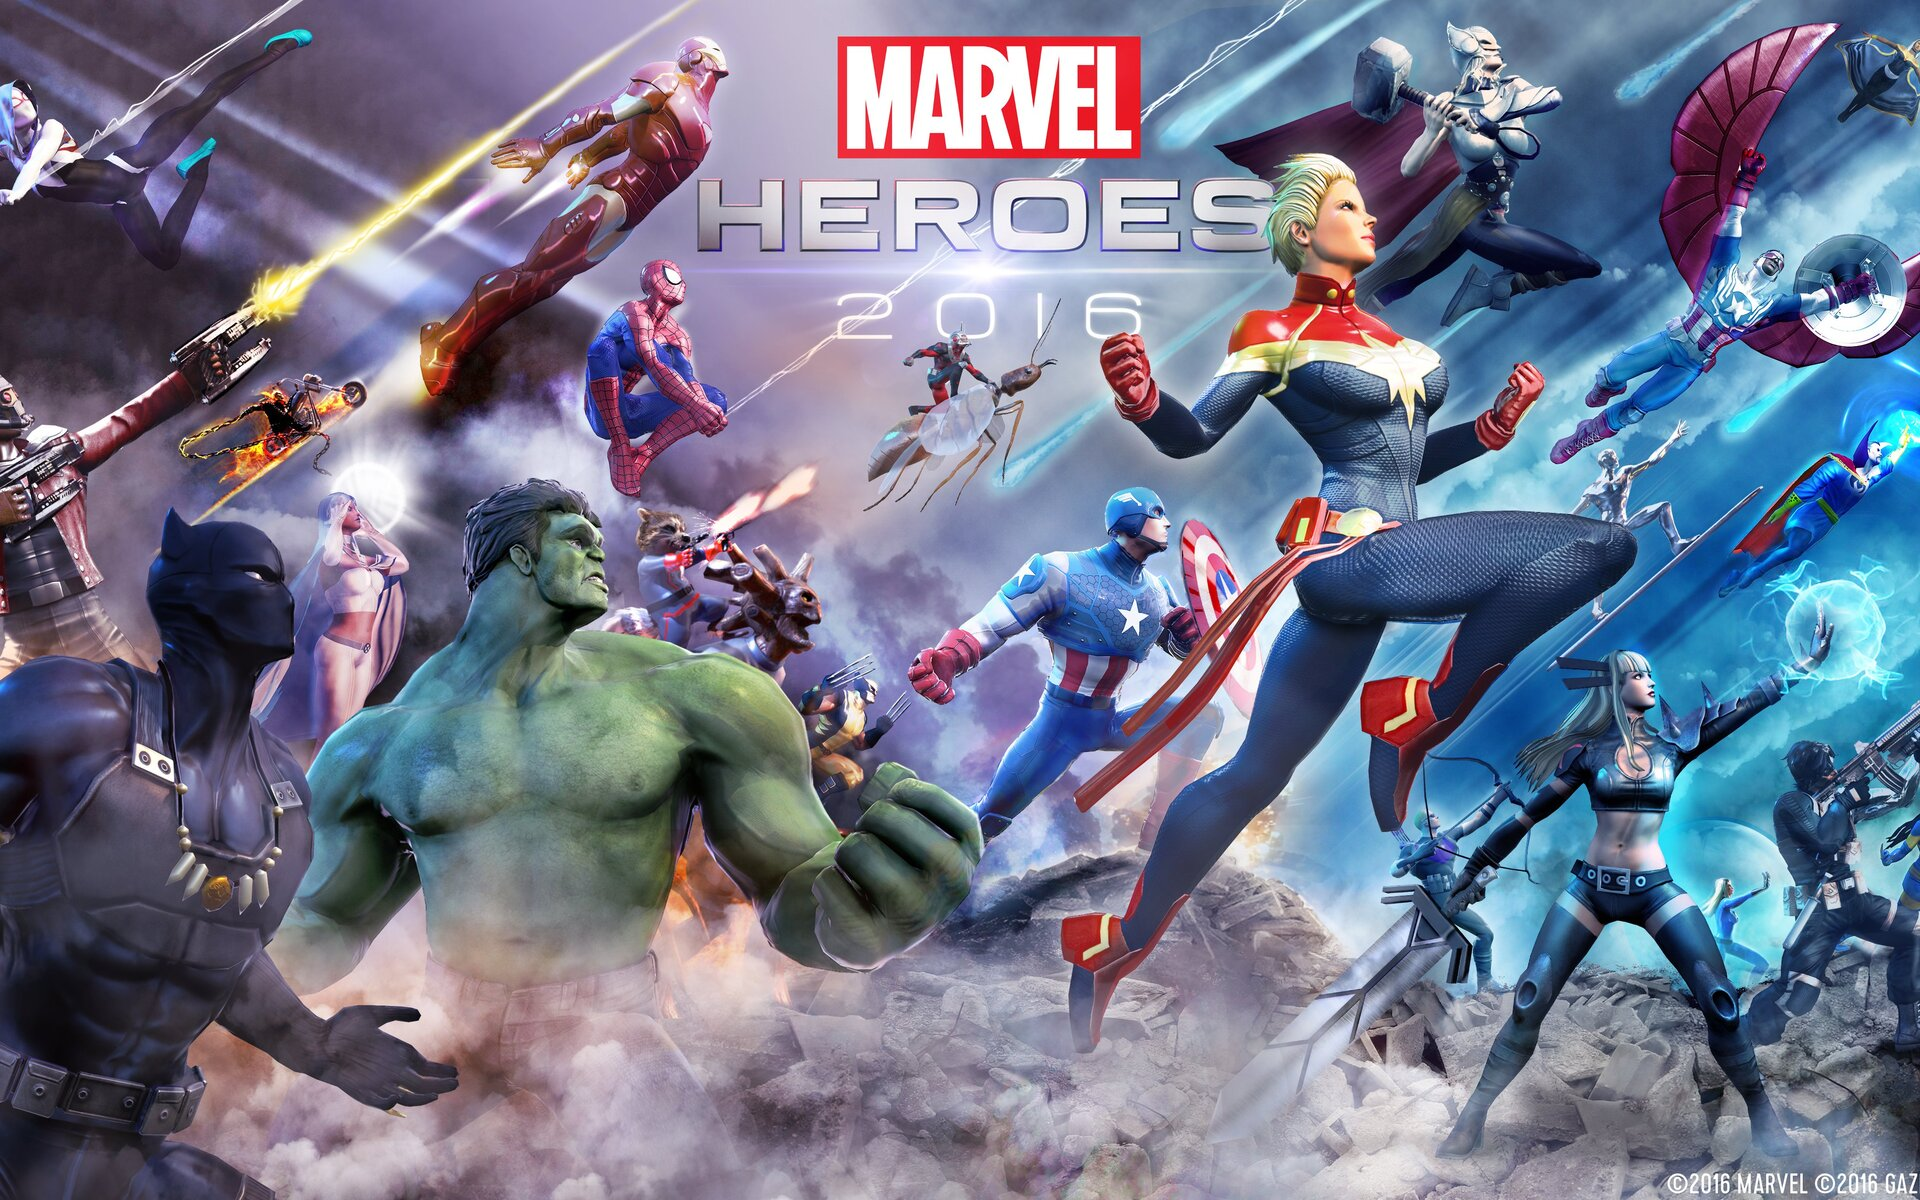 marvel-heroes-2016-art-qhd.jpg